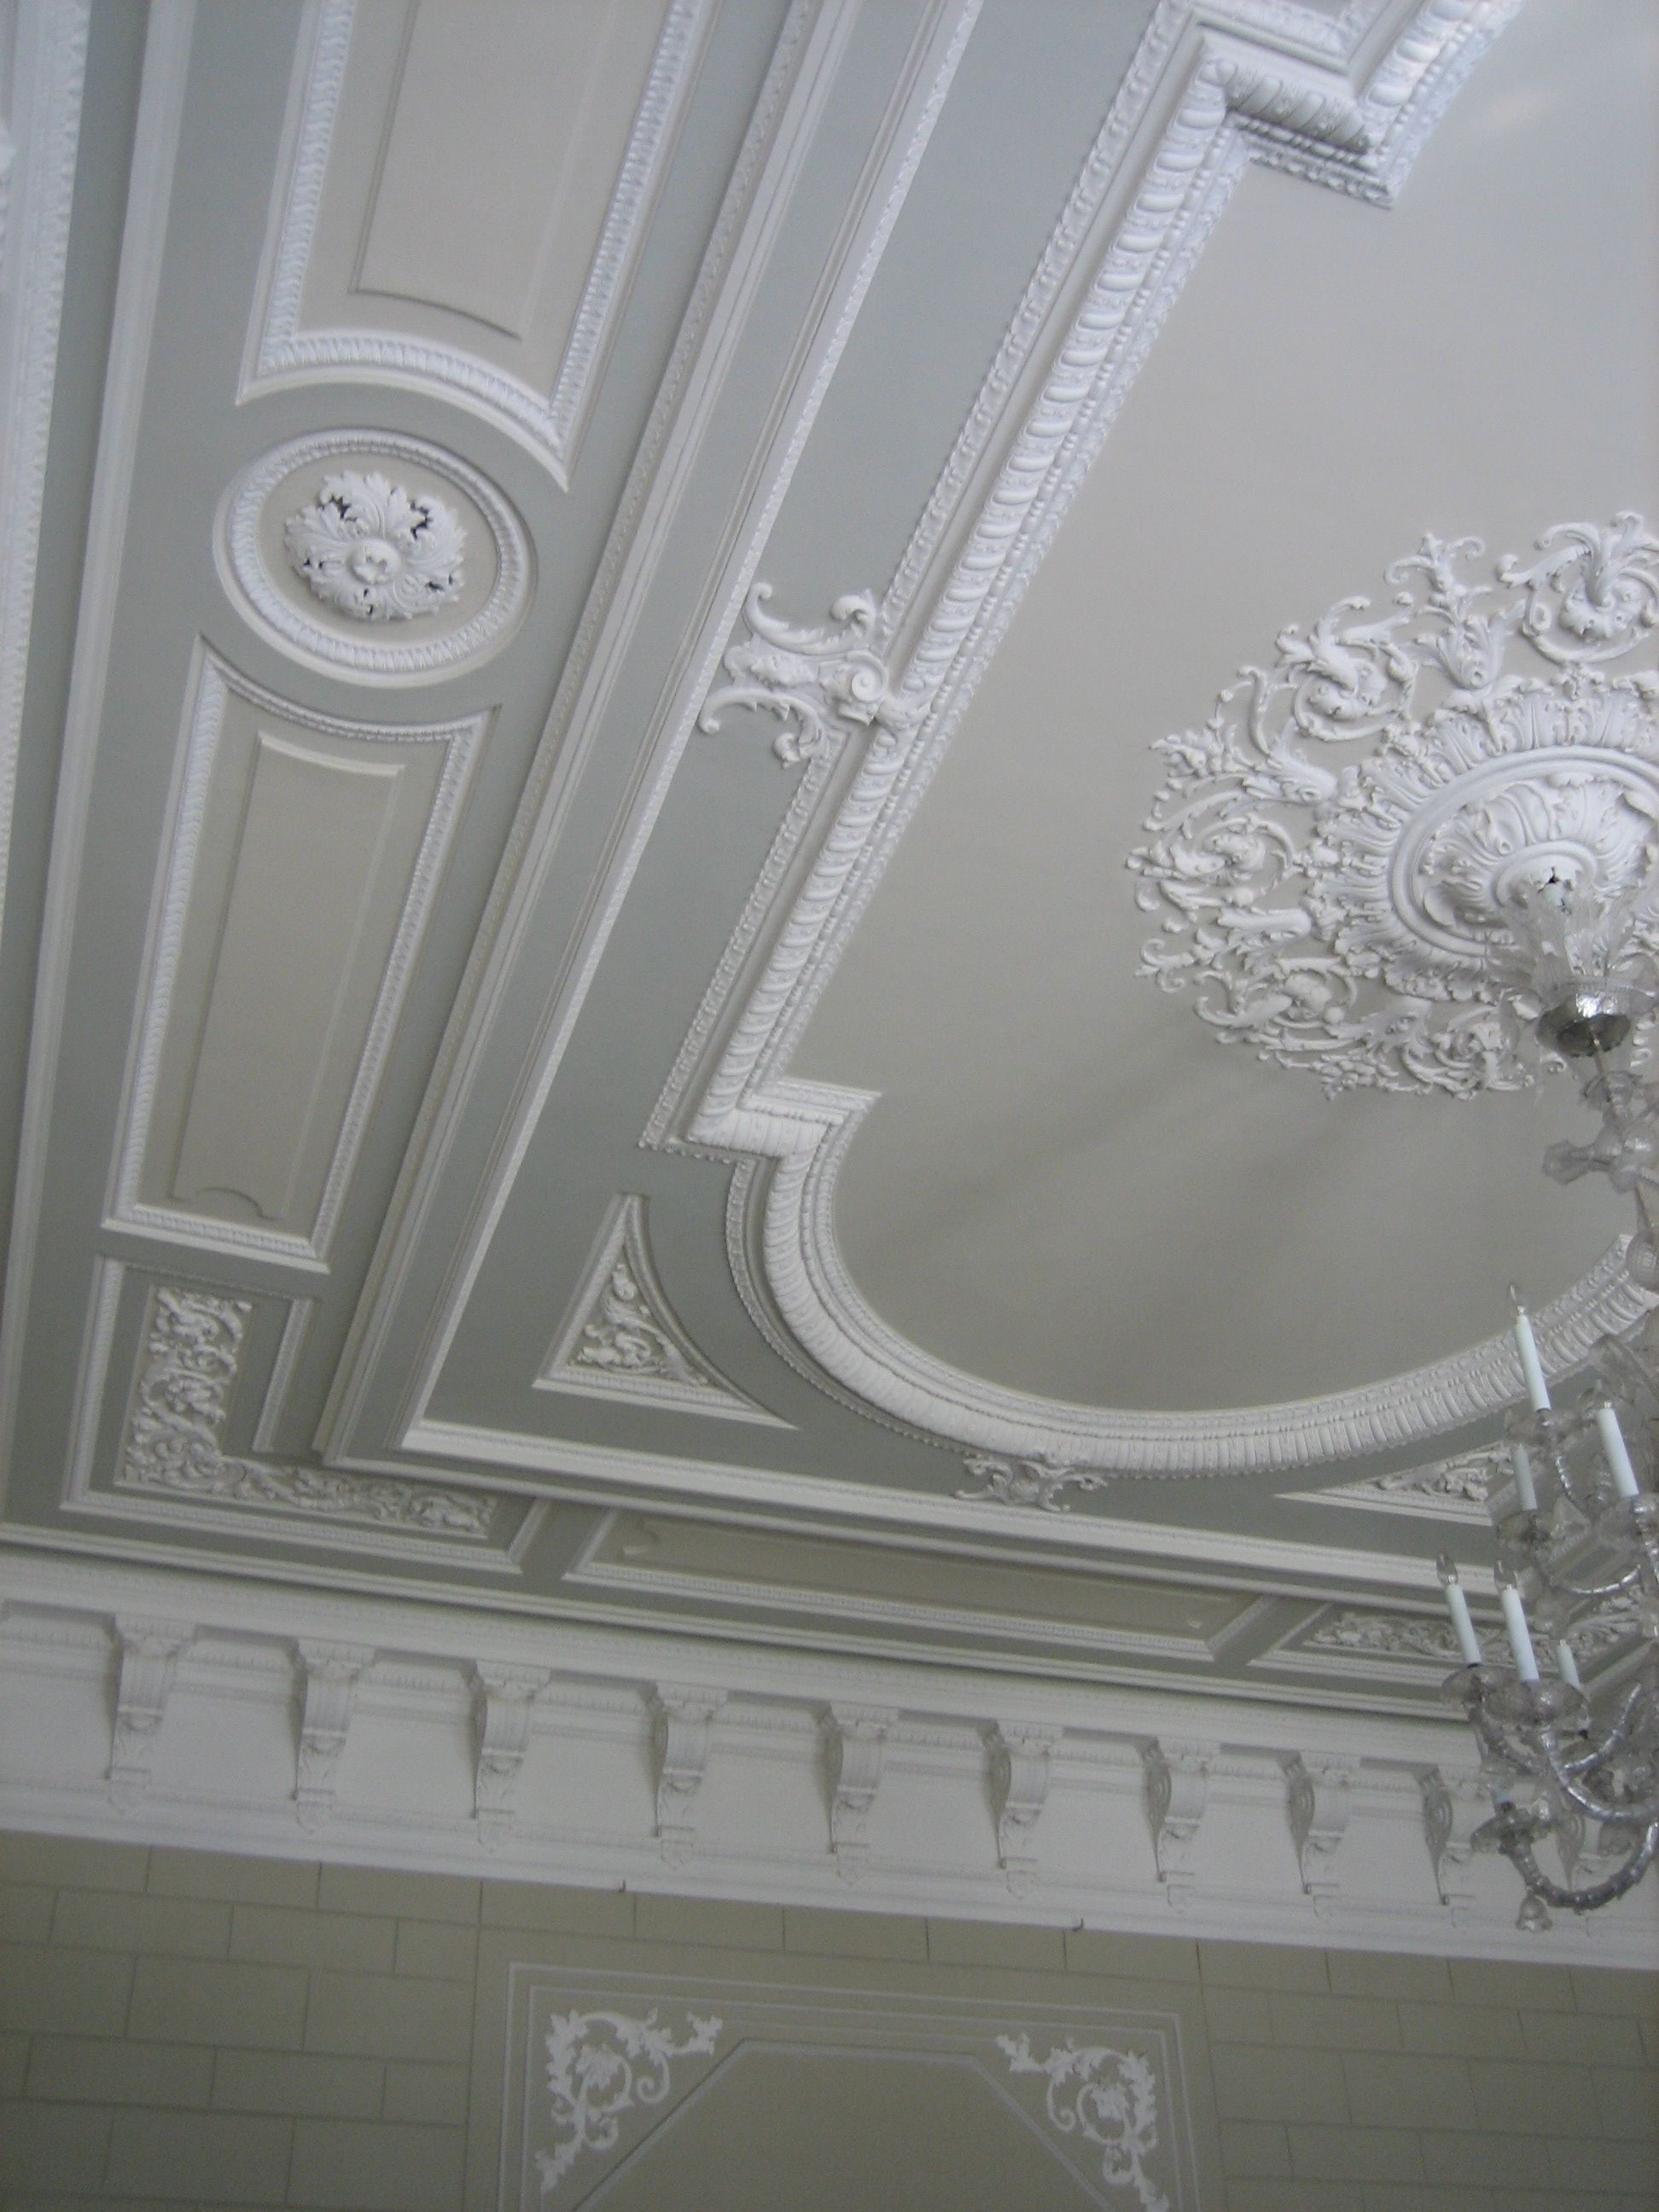 Spanish Plaster Ceiling Decoration : Pin by Виктор Арцаблюк on Потолки pinterest ceilings